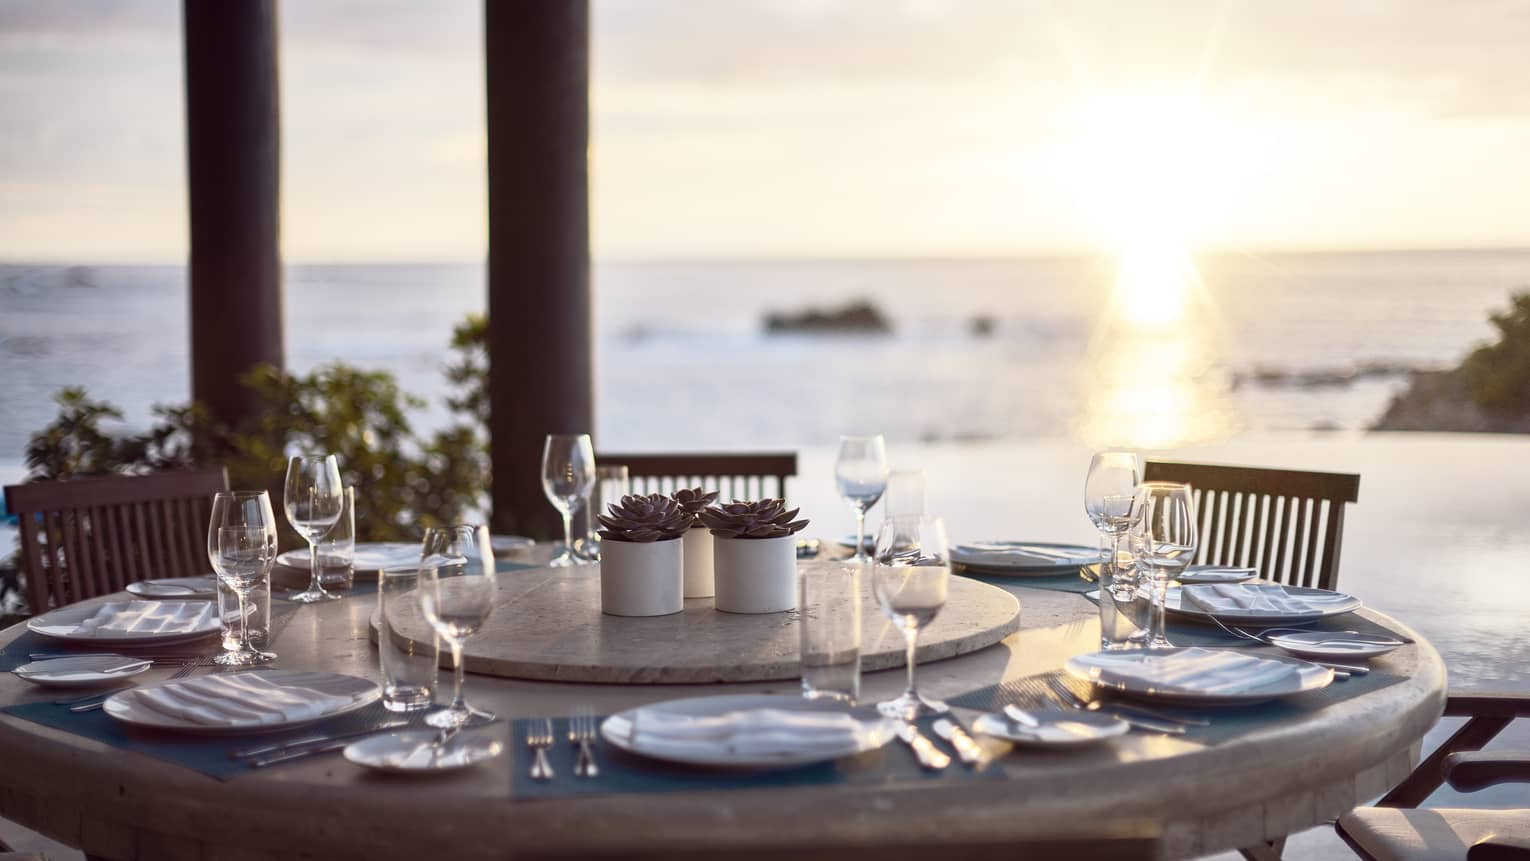 Round outdoor dining table with wine glasses, ocean and sunset in background